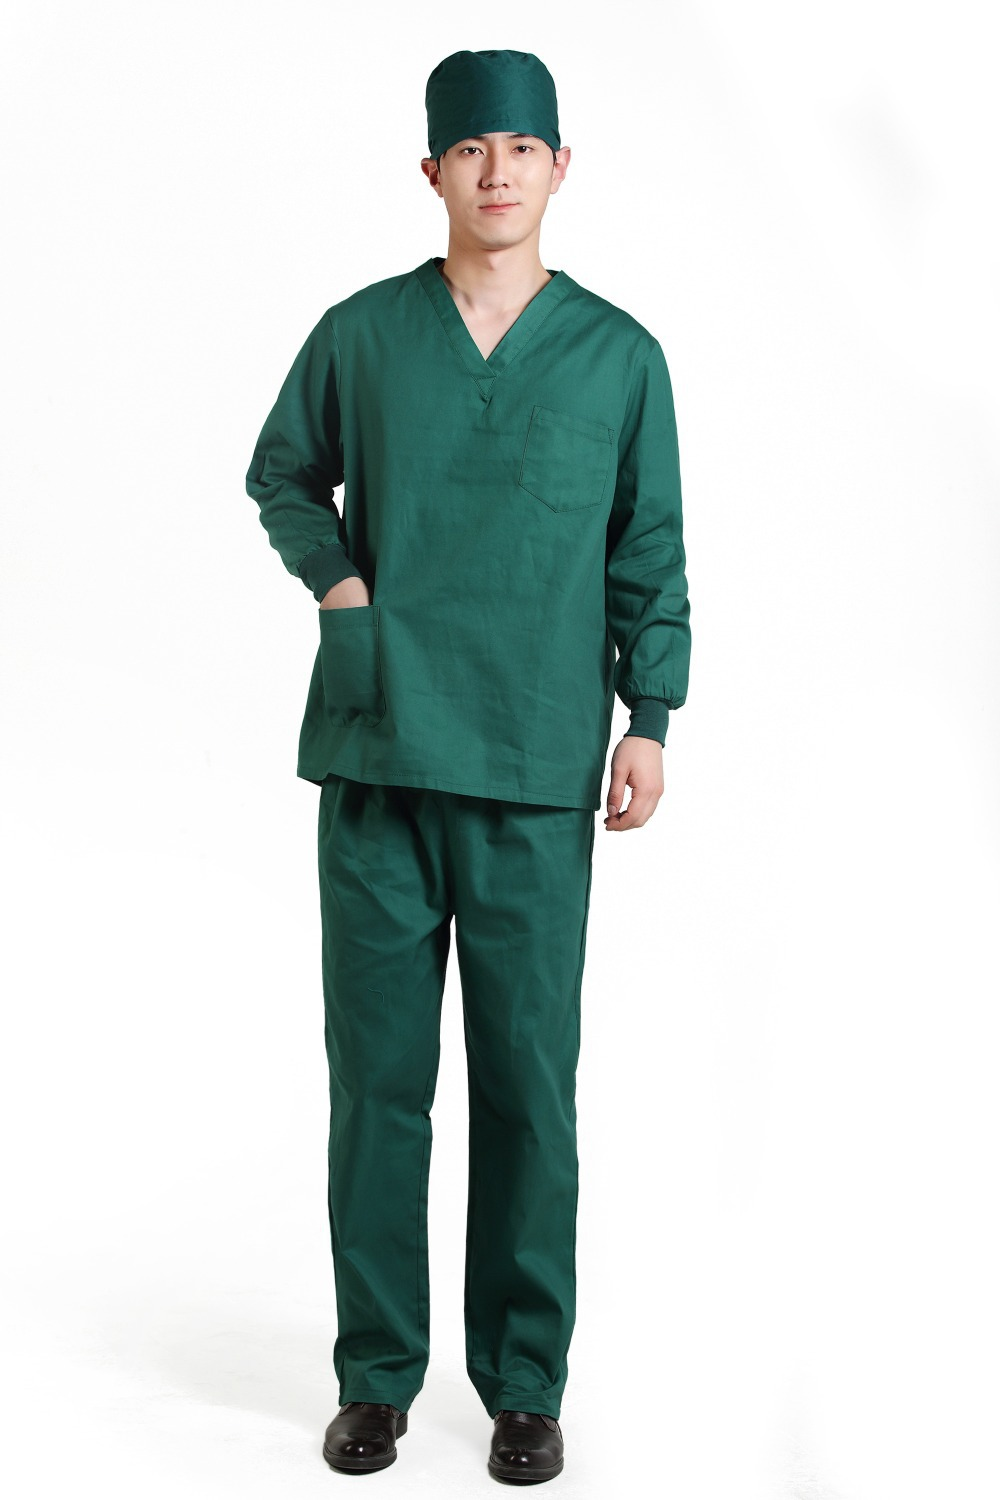 2015 OEM surgical clothing surgical gowns hospital uniform scrub ...